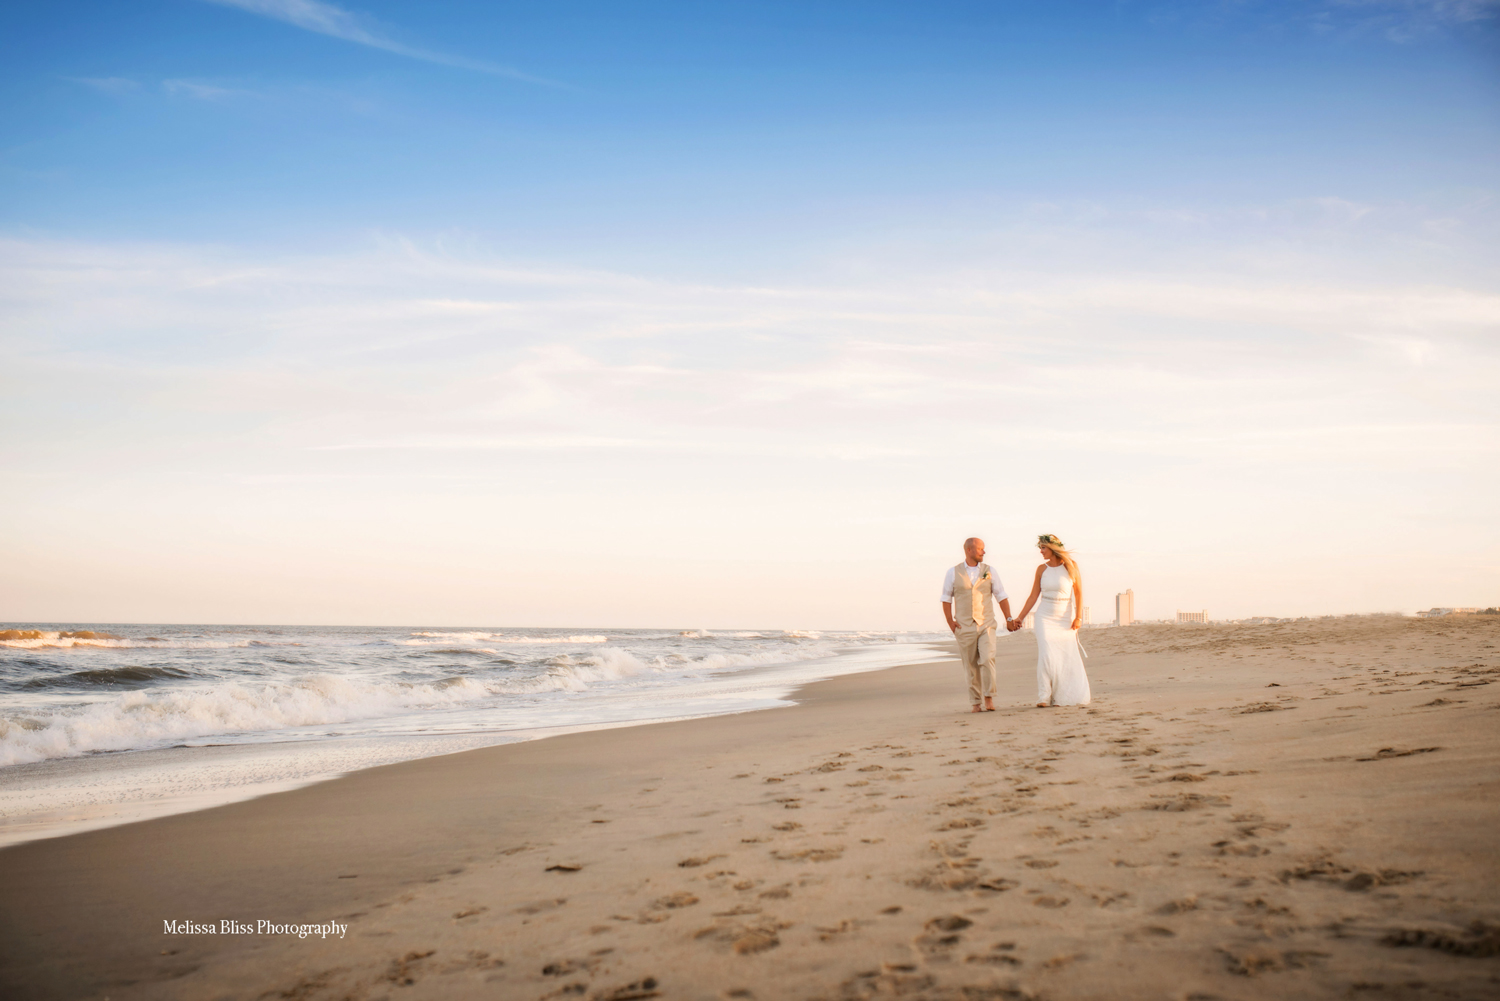 bride-and-groom-walk-along-shore-at-sunset-virginia-beach-oceanfront-intimate-wedding-by-melissa-bliss-photography-sandbridge-norfolk-va-beach-NC-wedding-photographer.jpg